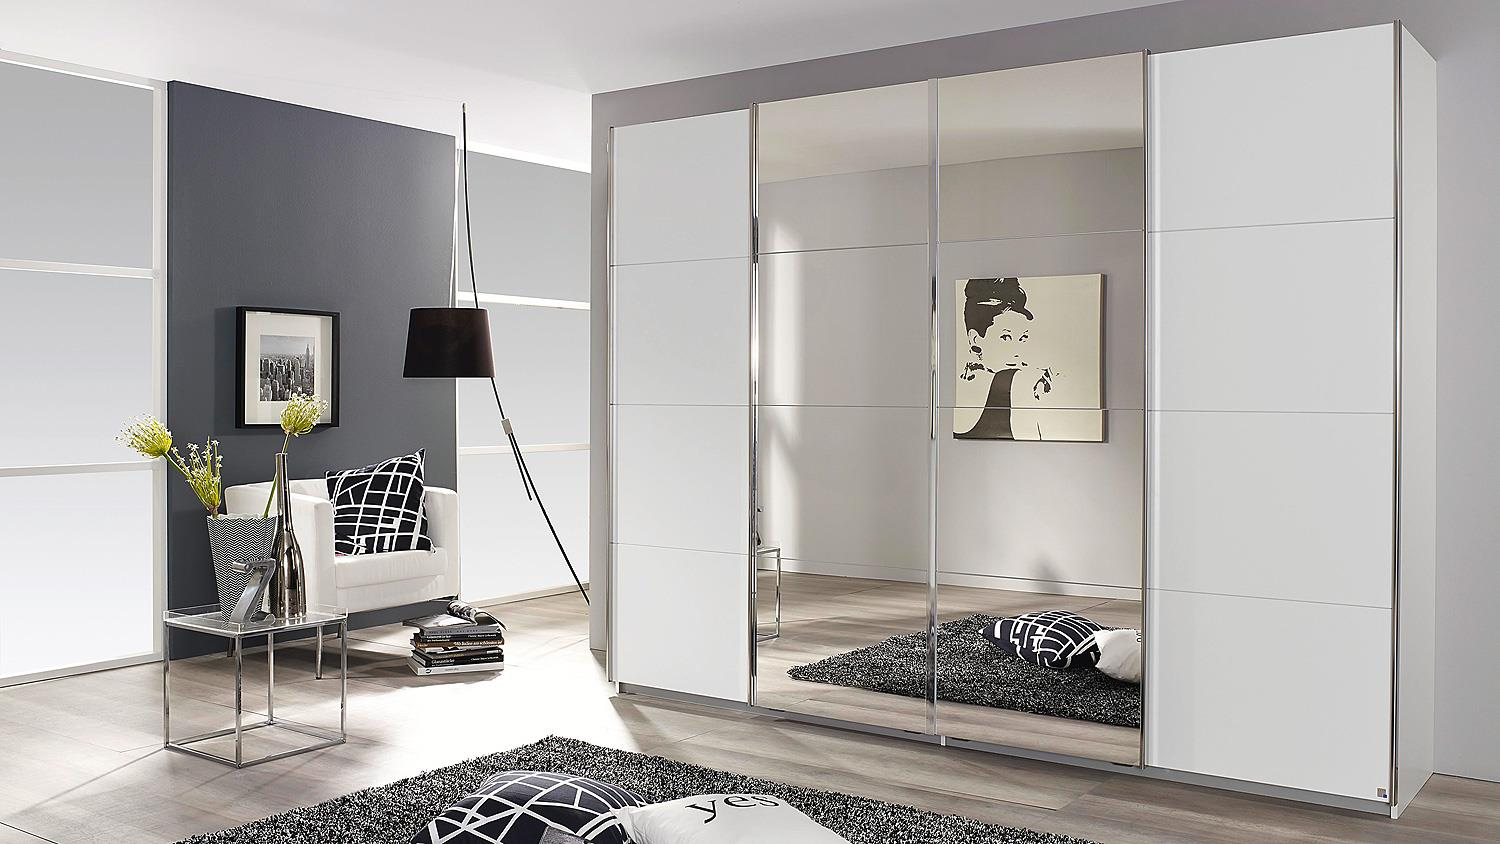 schwebet renschrank syncrono in wei mit spiegel 271 cm. Black Bedroom Furniture Sets. Home Design Ideas